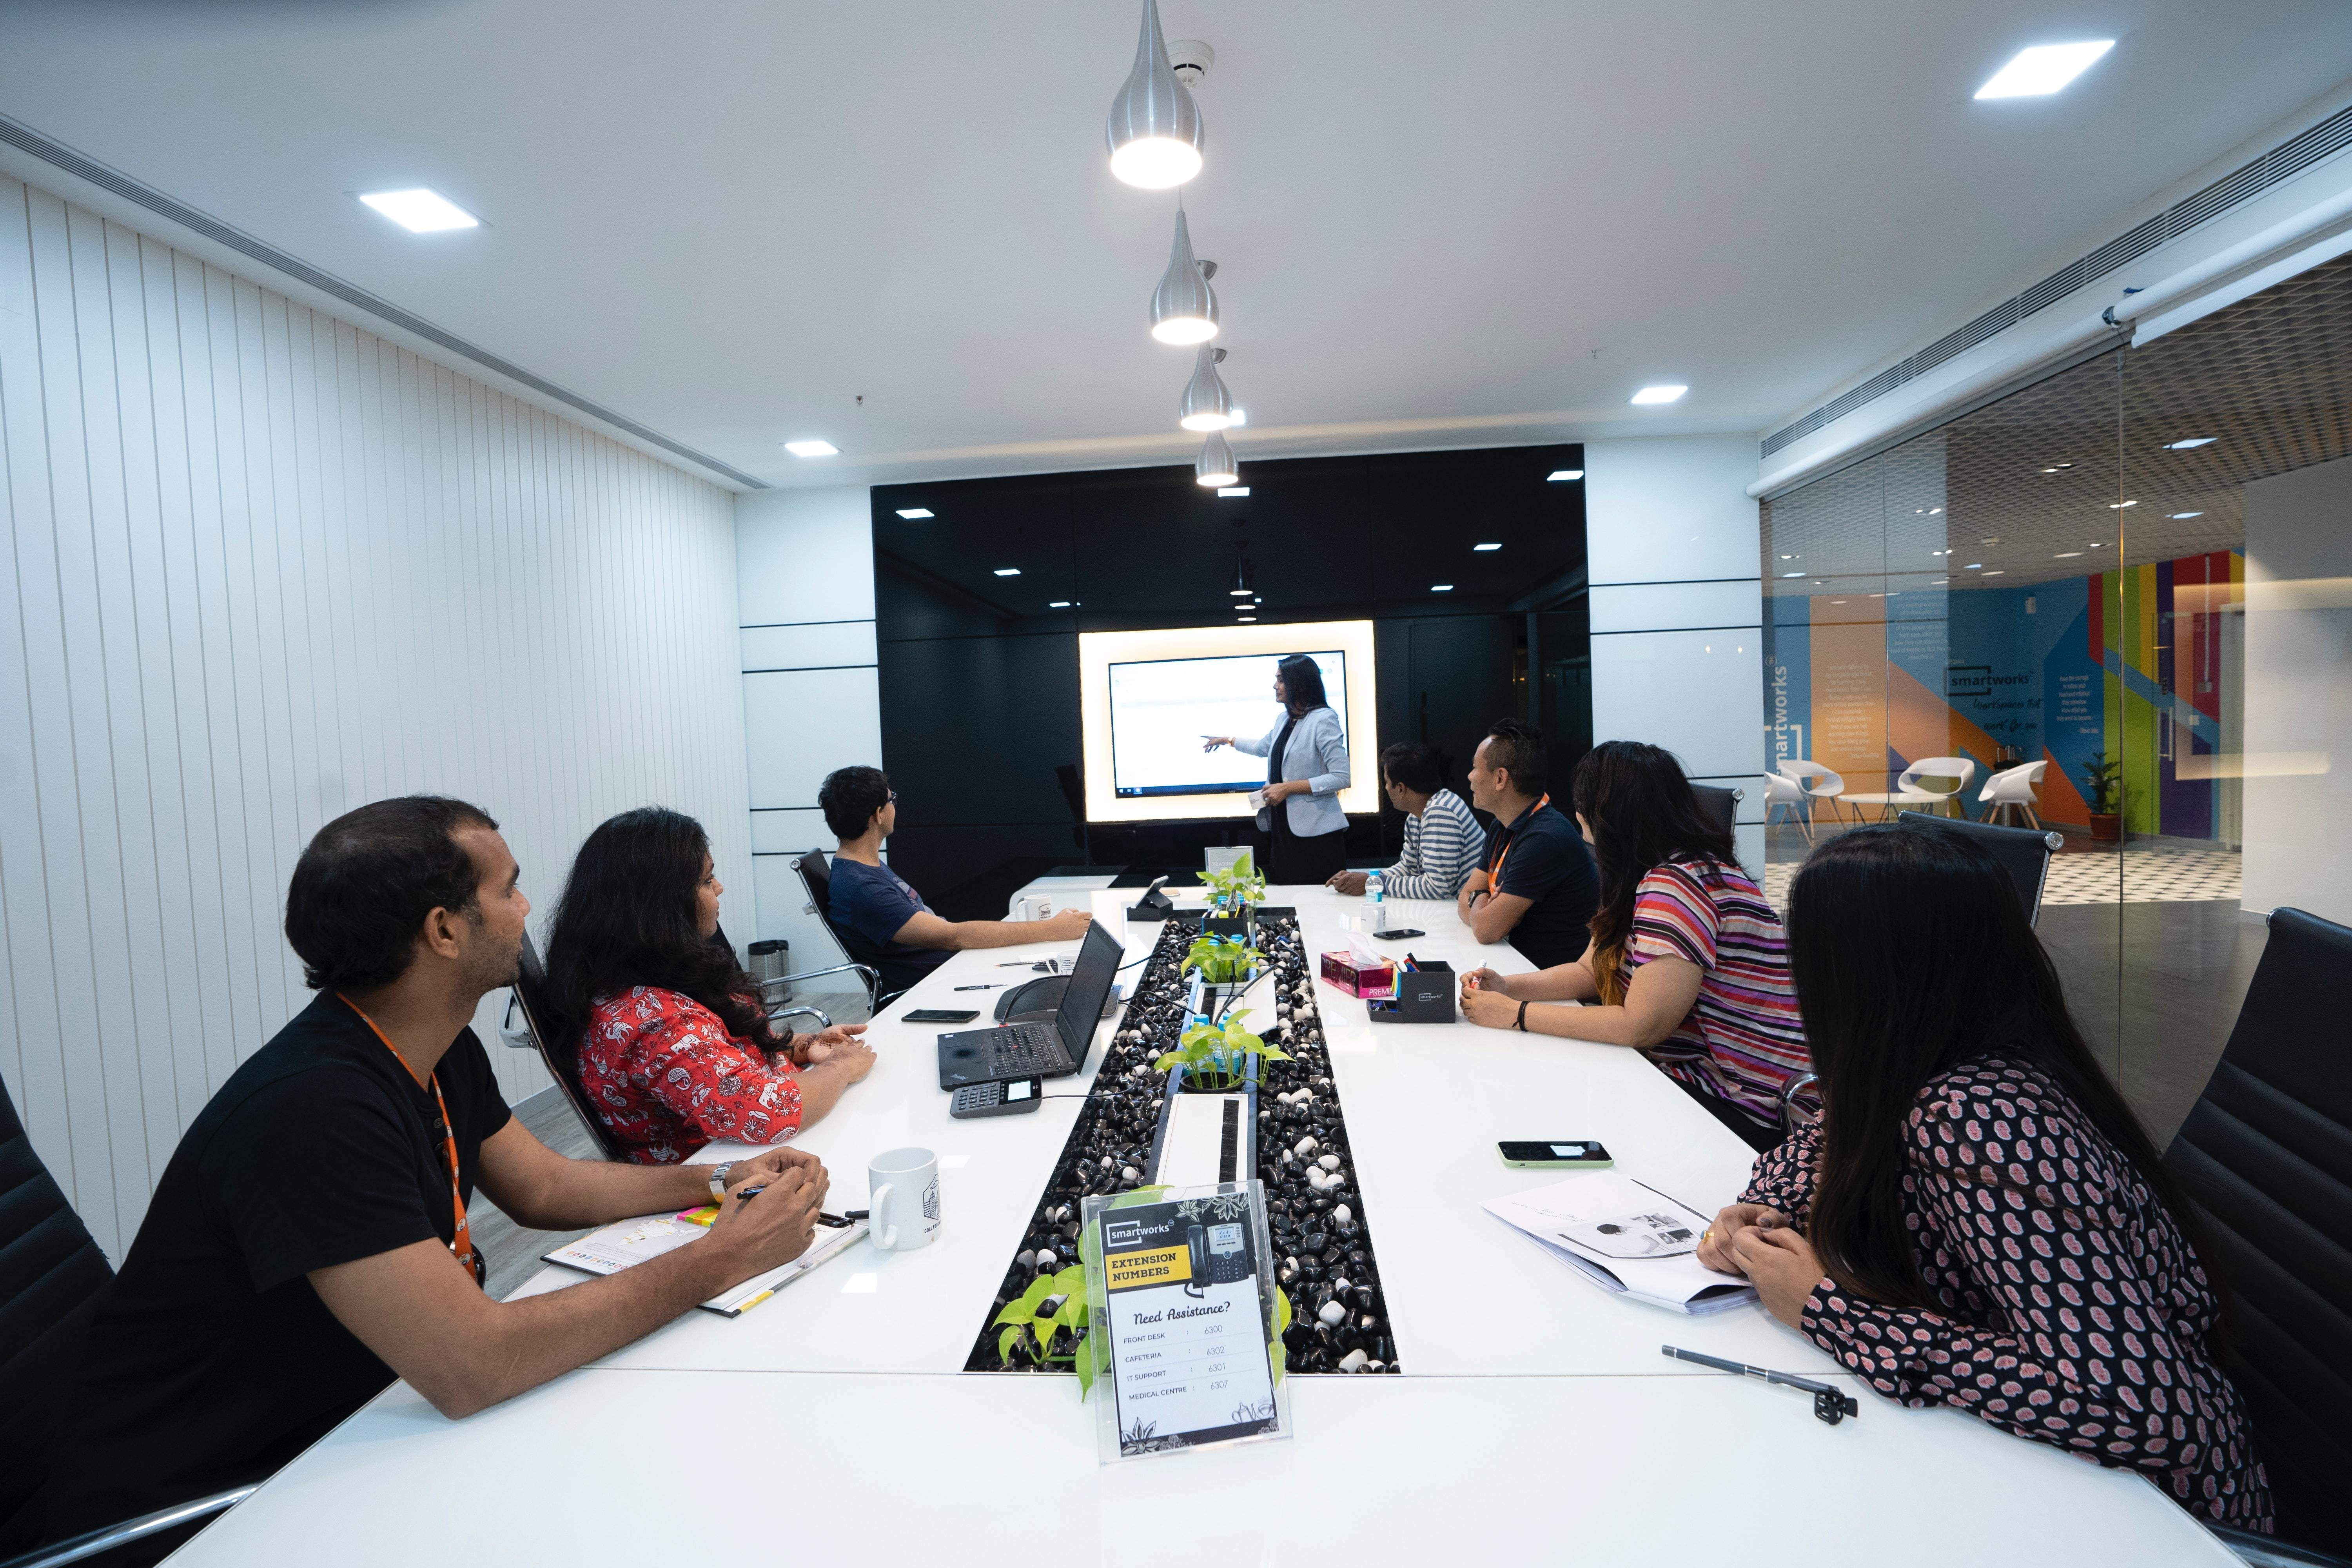 A team of people in a meeting room look towards a presenter; business, entrepreneurs, digitalisation.